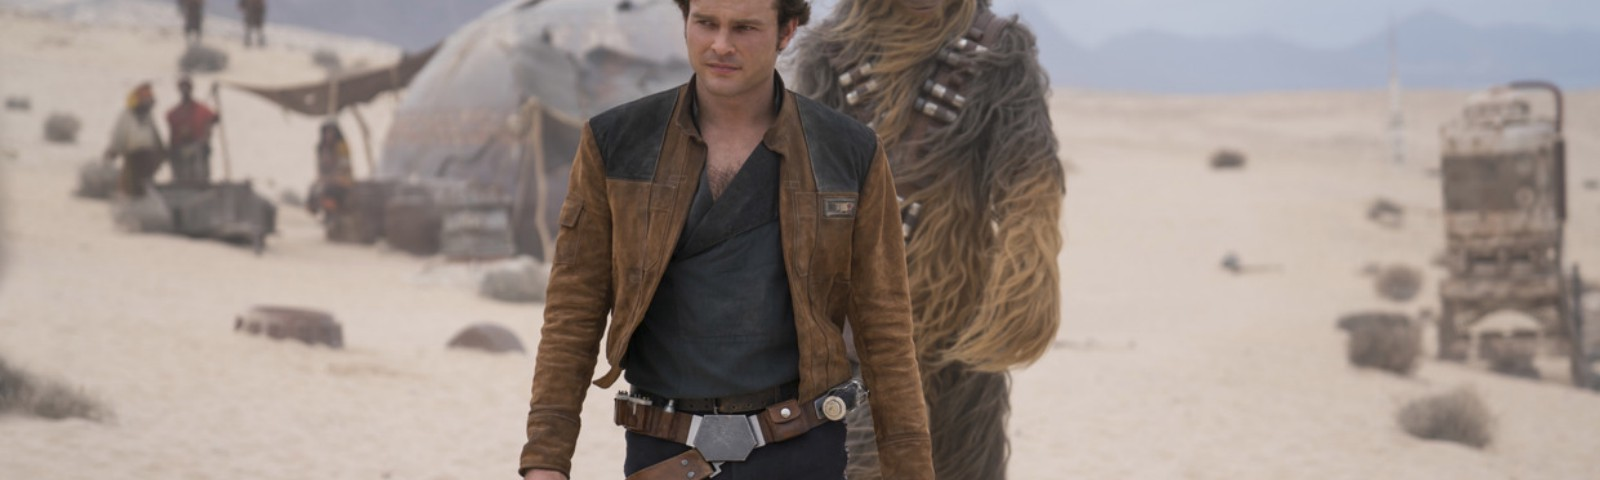 A scene from 'Solo: A Star Wars Story,' featuring a young Han Solo and Chewbacca